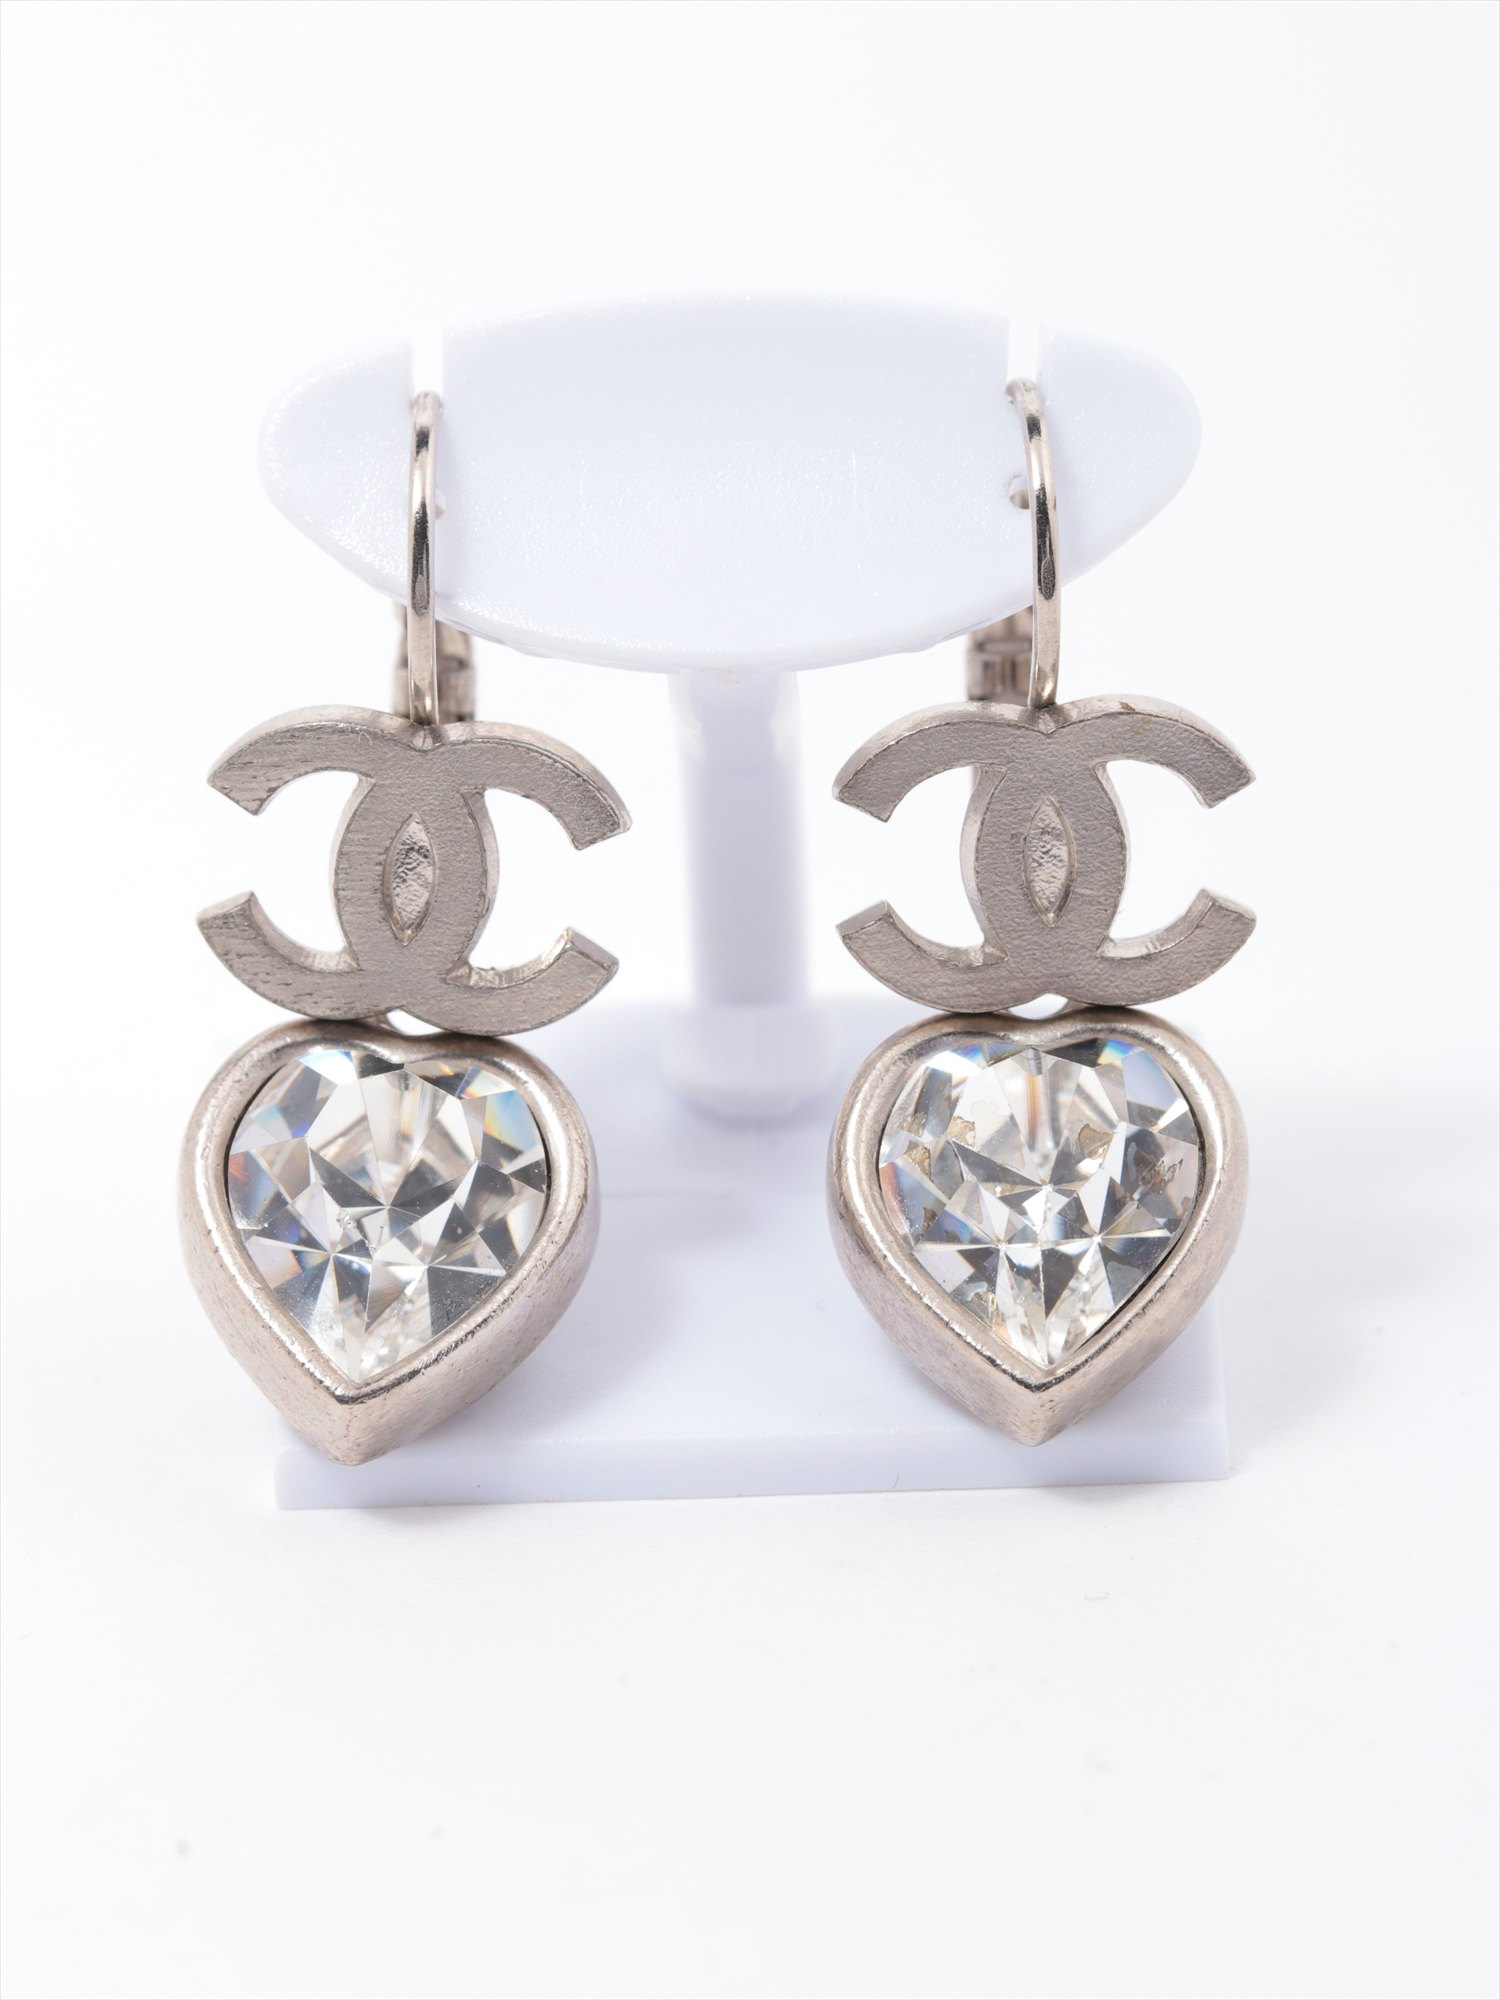 [Used goods] Chanel Coco mark earrings (for both ears) brass silver heart Bijou 04A